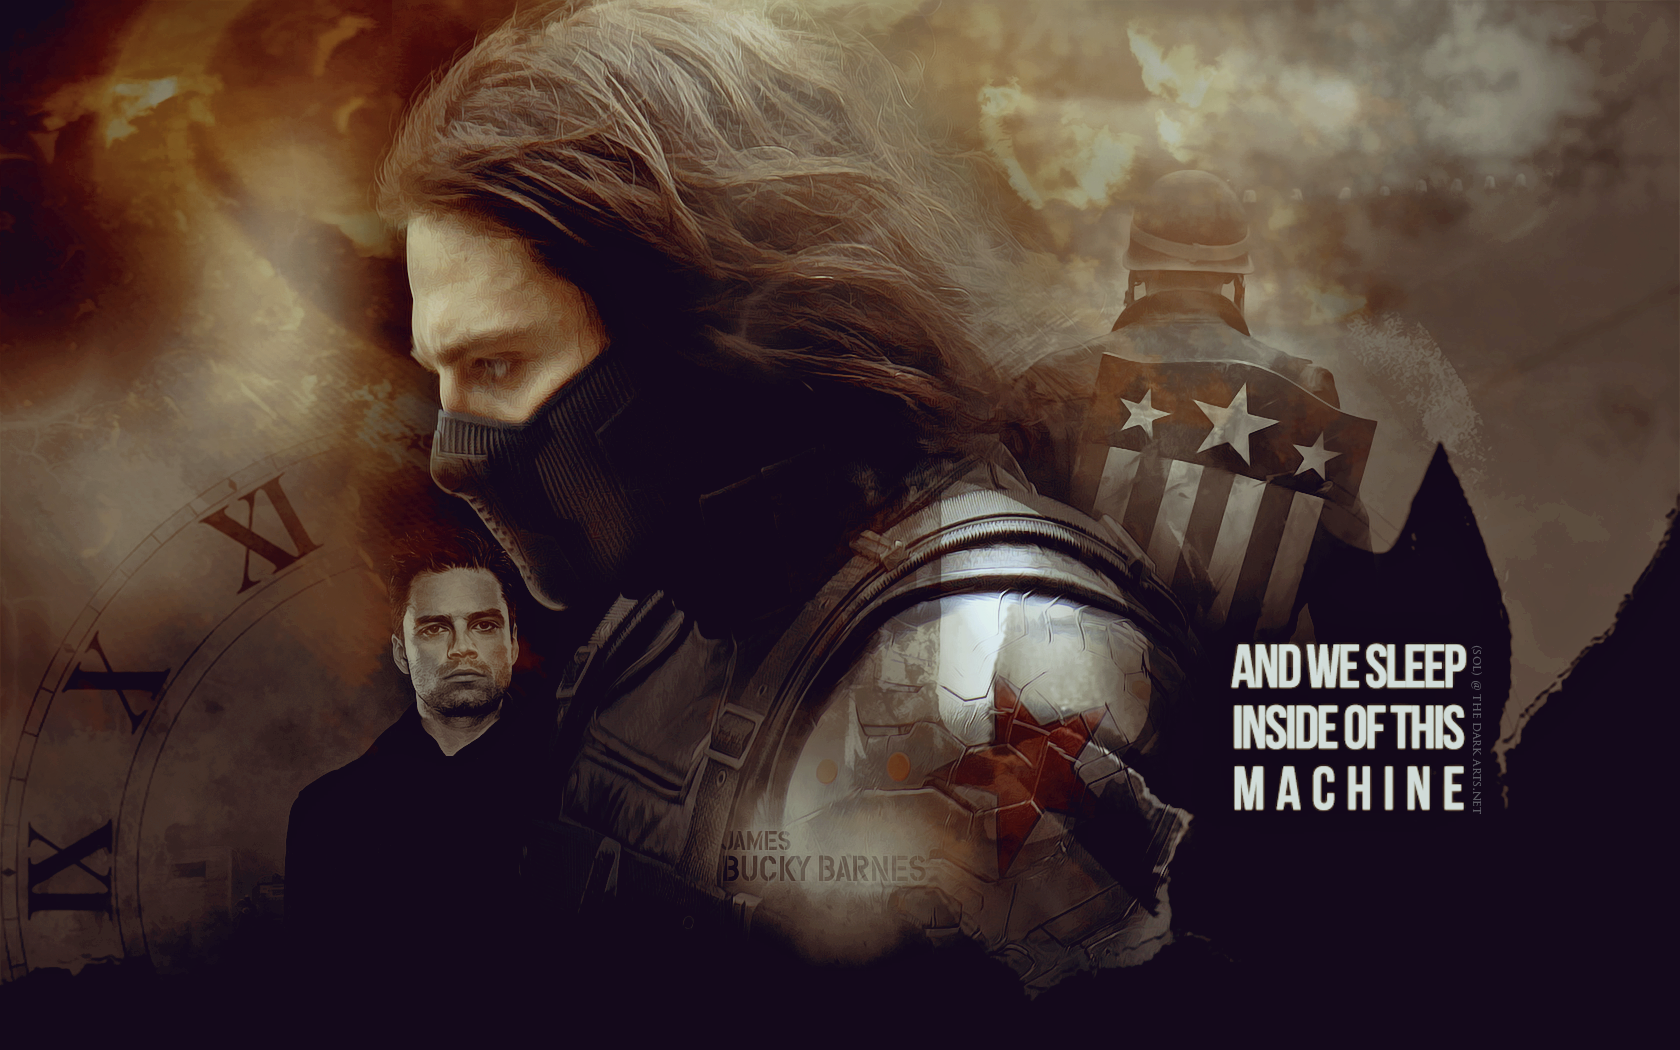 bucky barnes winter soldier images winter soldier hd